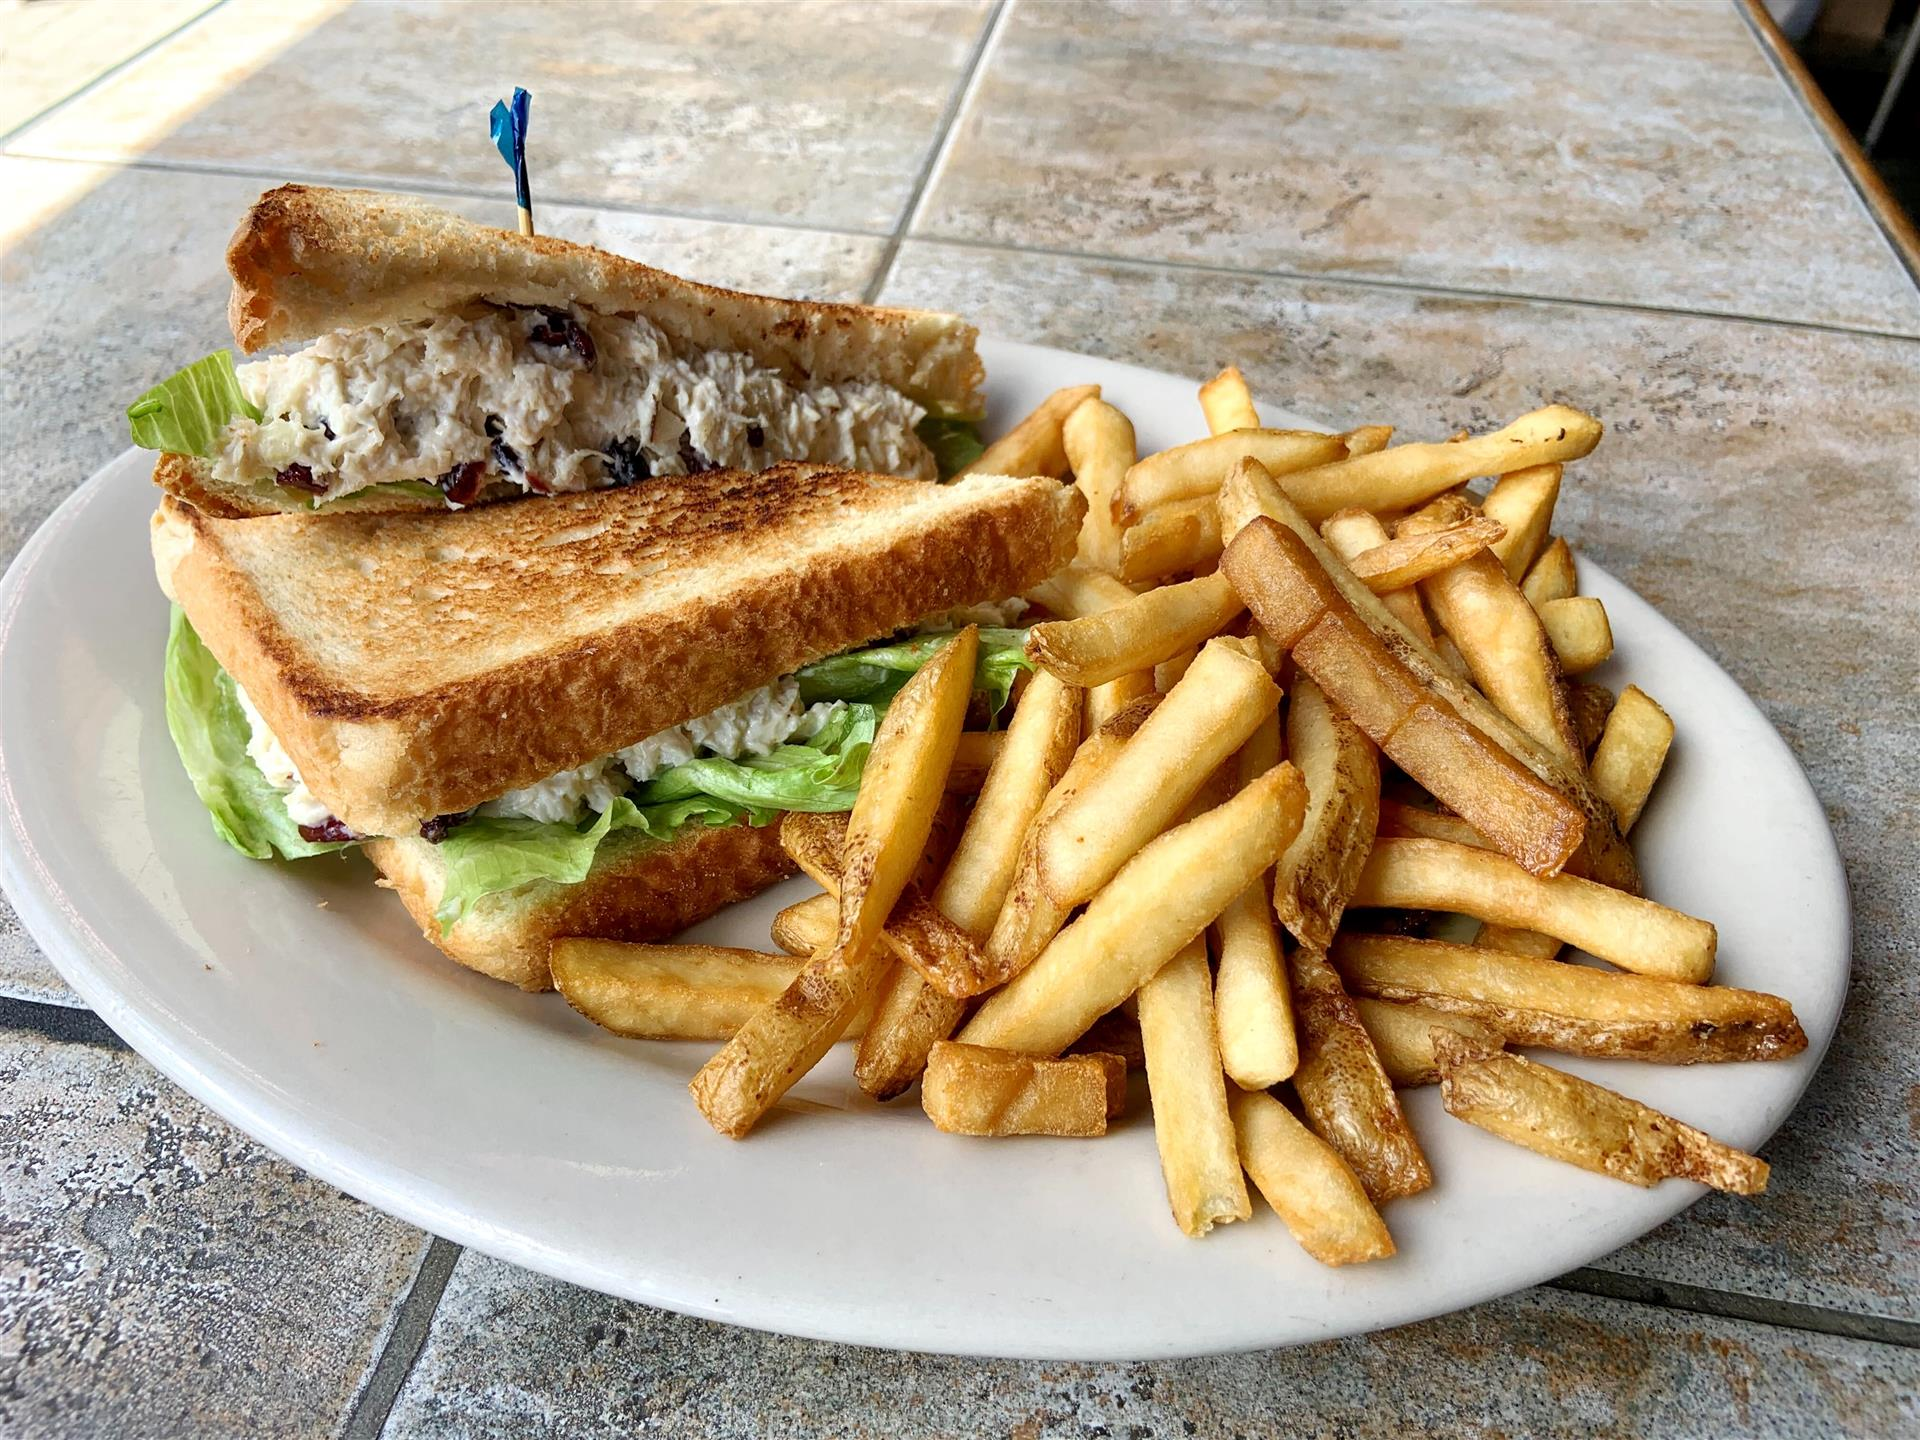 Apple Cranberry Chicken salad sandwich with french fries